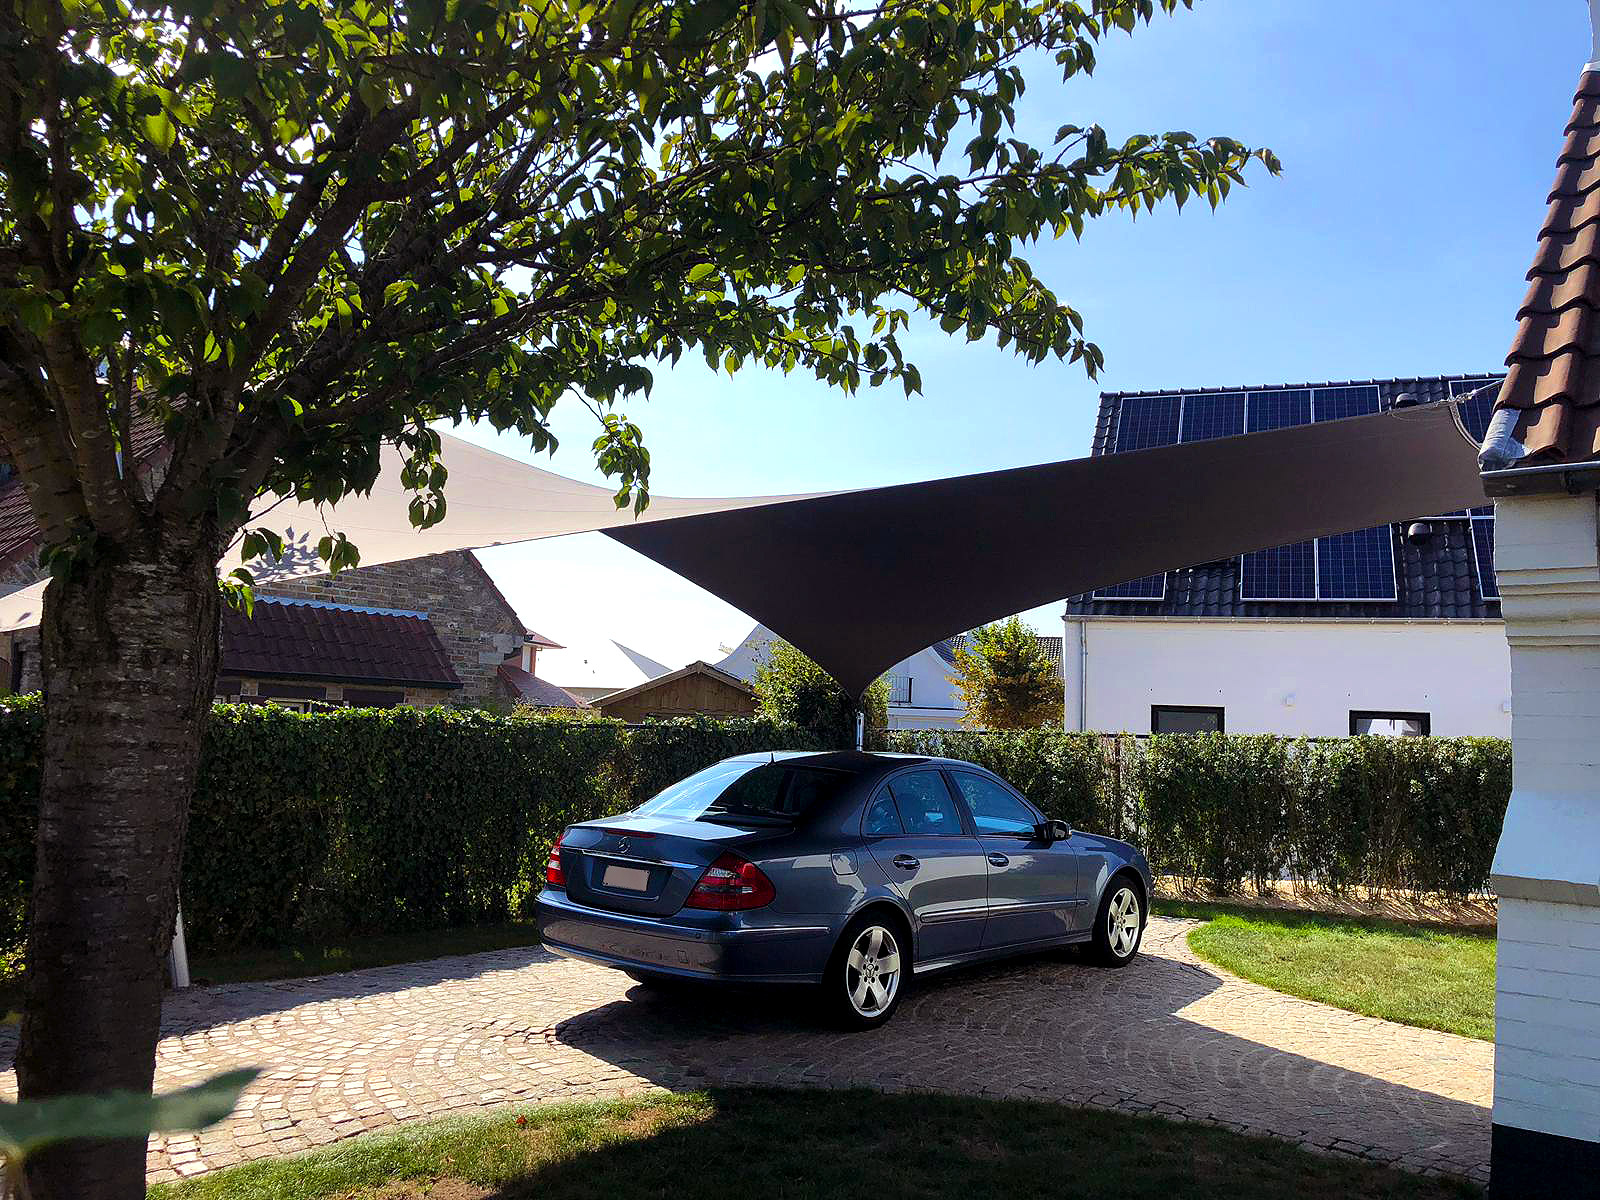 Karpot Protecting Your Car With A Stylish Textile Carport. - Texstyleroofs.com